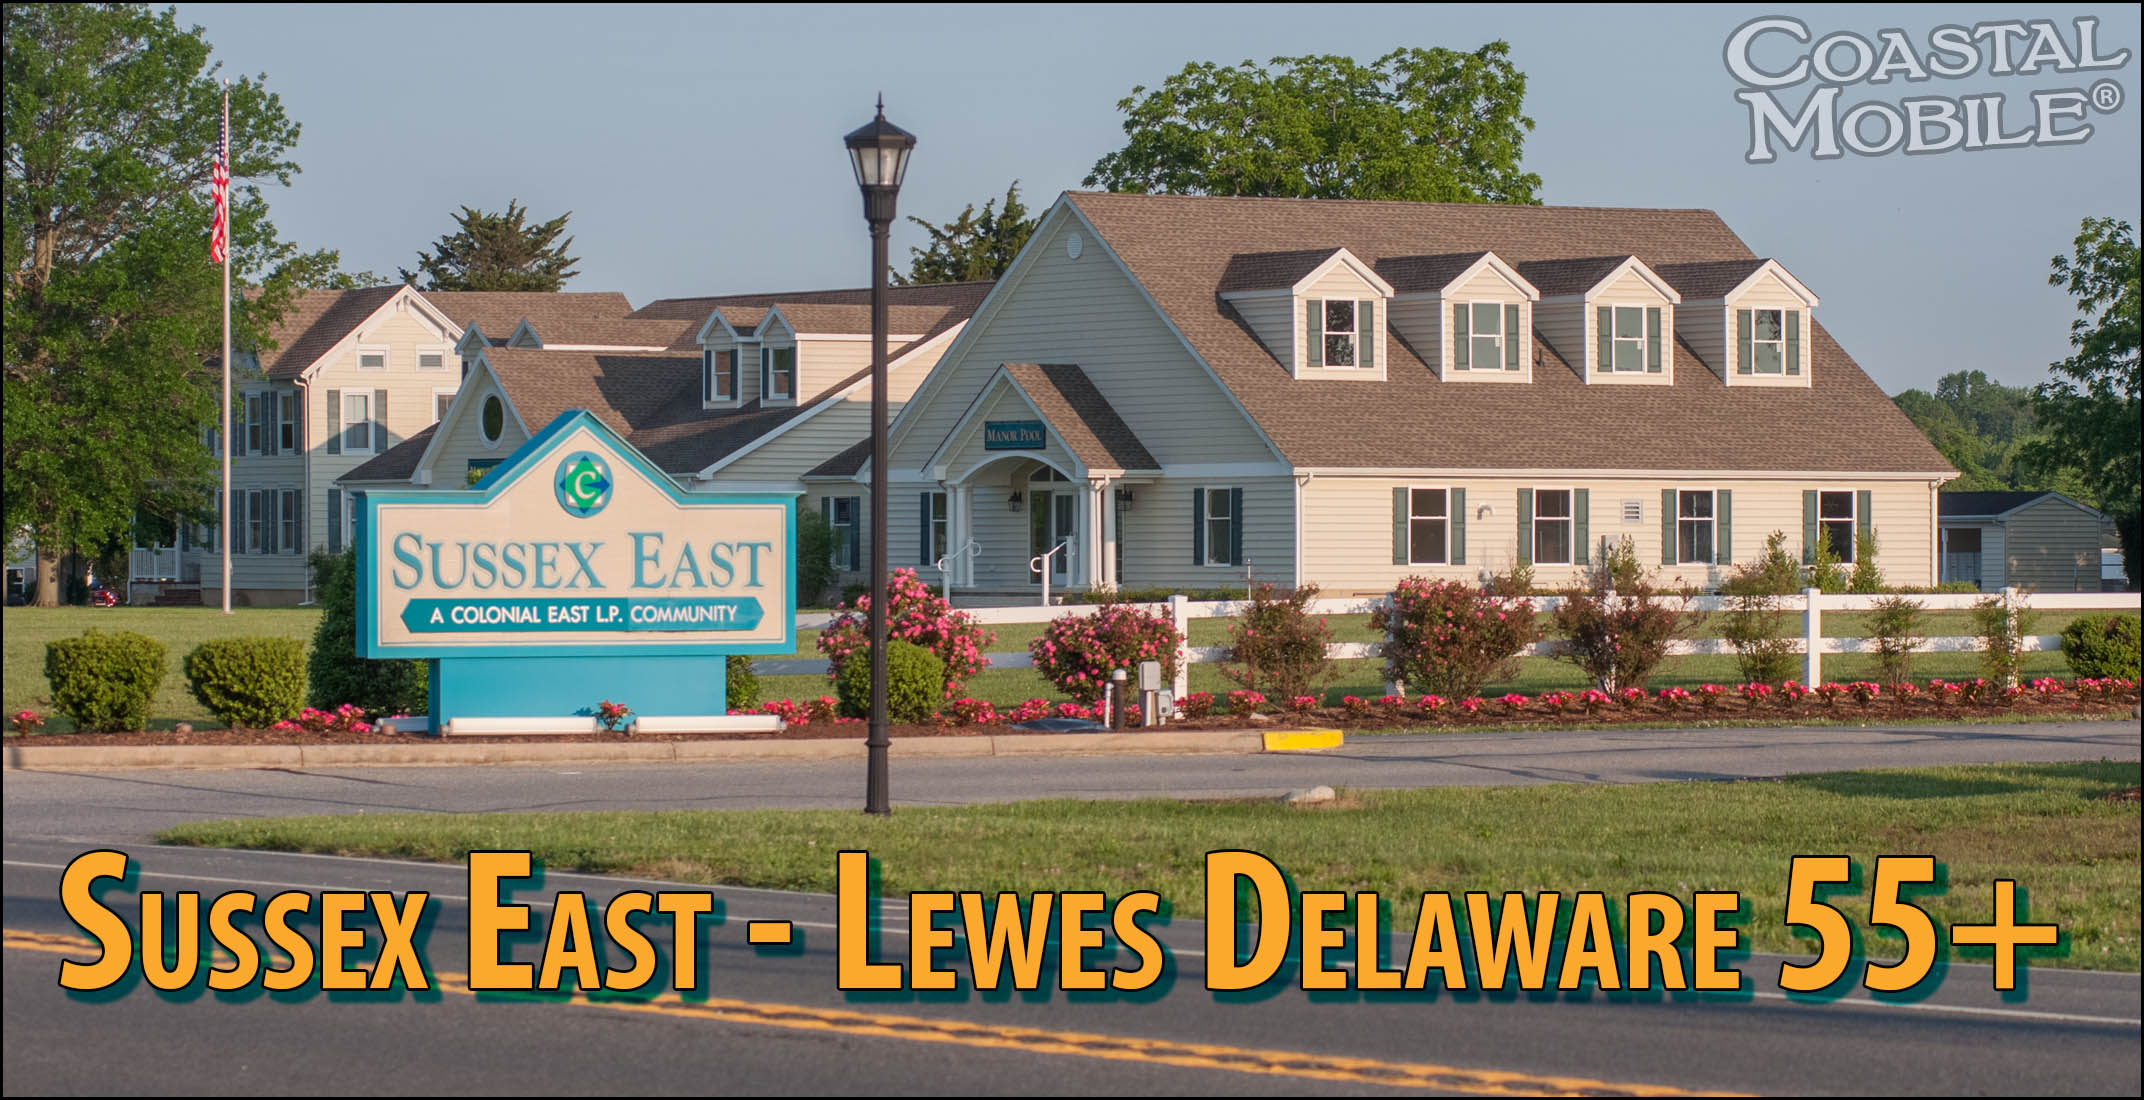 Sussex East Lewes Delaware